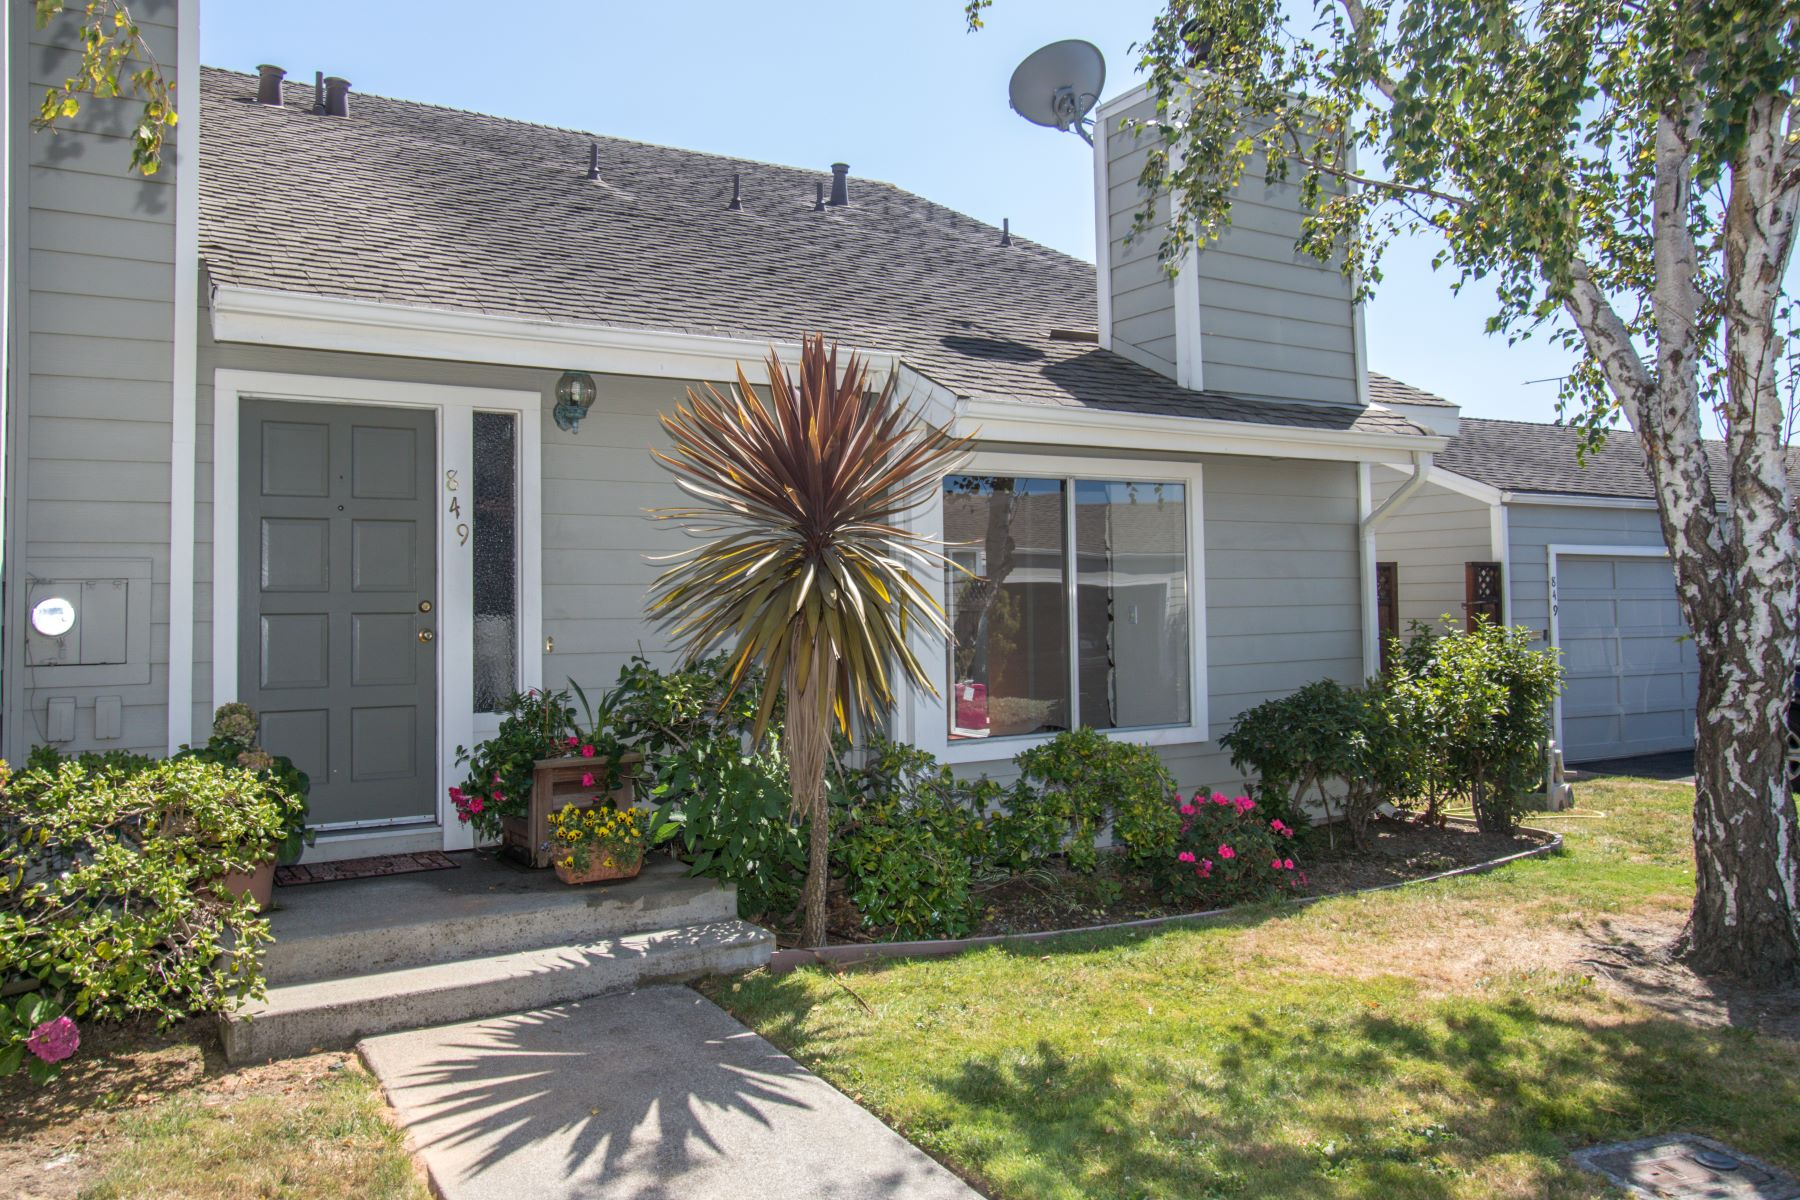 townhouses for Sale at Delightful Contemporary Townhouse 849 Vespucci Lane Foster City, California 94404 United States